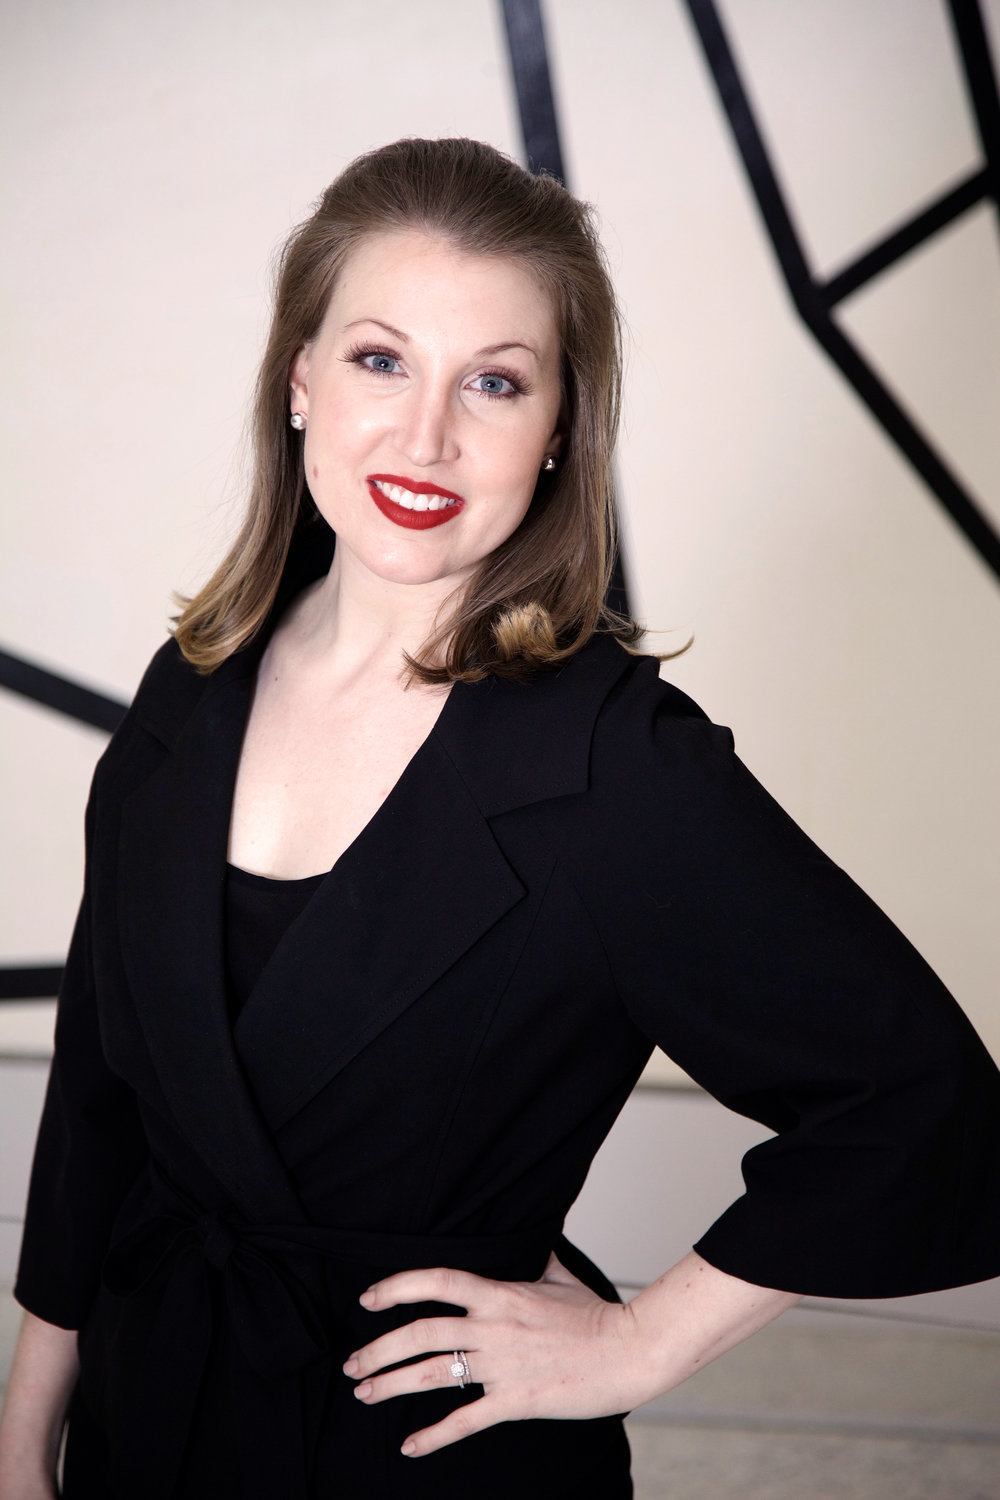 Sarah Clay Lindvall, Director Sarah is a Music Educator, Vocalist, and Choral Conductor dedicated to sharing the gift of music through creative education and innovative performance. She currently serves as the Director of Music and Dramatic Arts at the Notre Dame School of Manhattan. Besides directing Sirens of Gotham, Sarah =acts as faculty and coach for Sweet Adelines International's Greater NY/NJ Region 15, and teaches private voice to students of all ages. Sarah received a Master of Music degree in Vocal Performance from New York University, and, prior to her graduate studies, received a Bachelor of Music degree in Music Education from Georgia Southern University.Before residing in New York City, Sarah was a featured performer at The Walt Disney World Resort in Orlando, Florida.